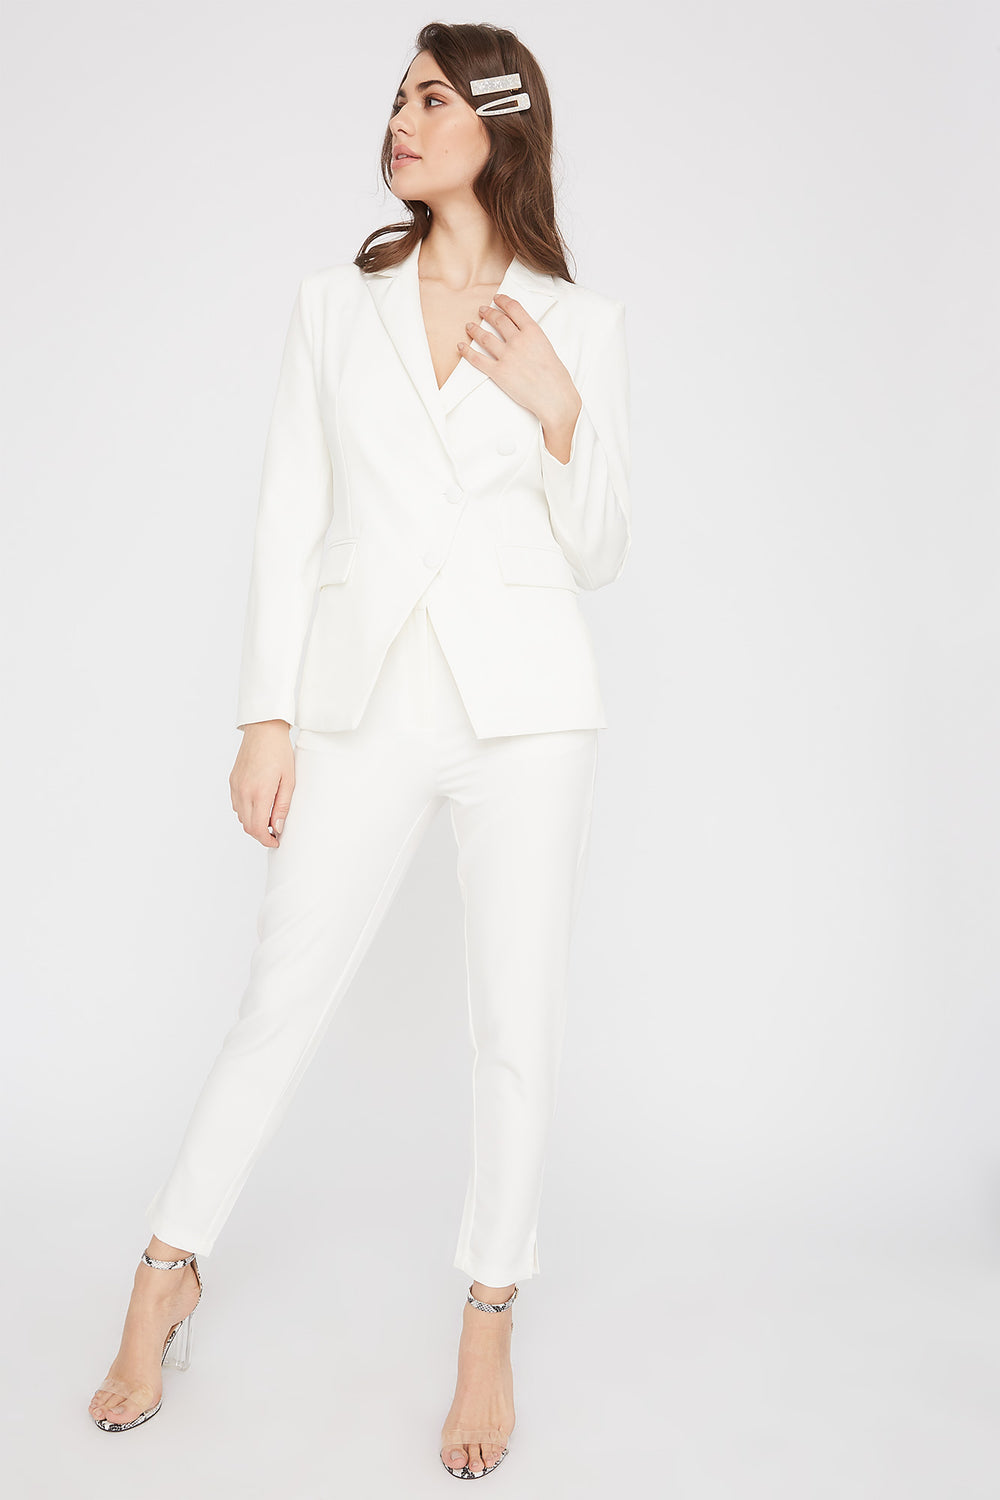 3-Button Single Breasted Blazer White